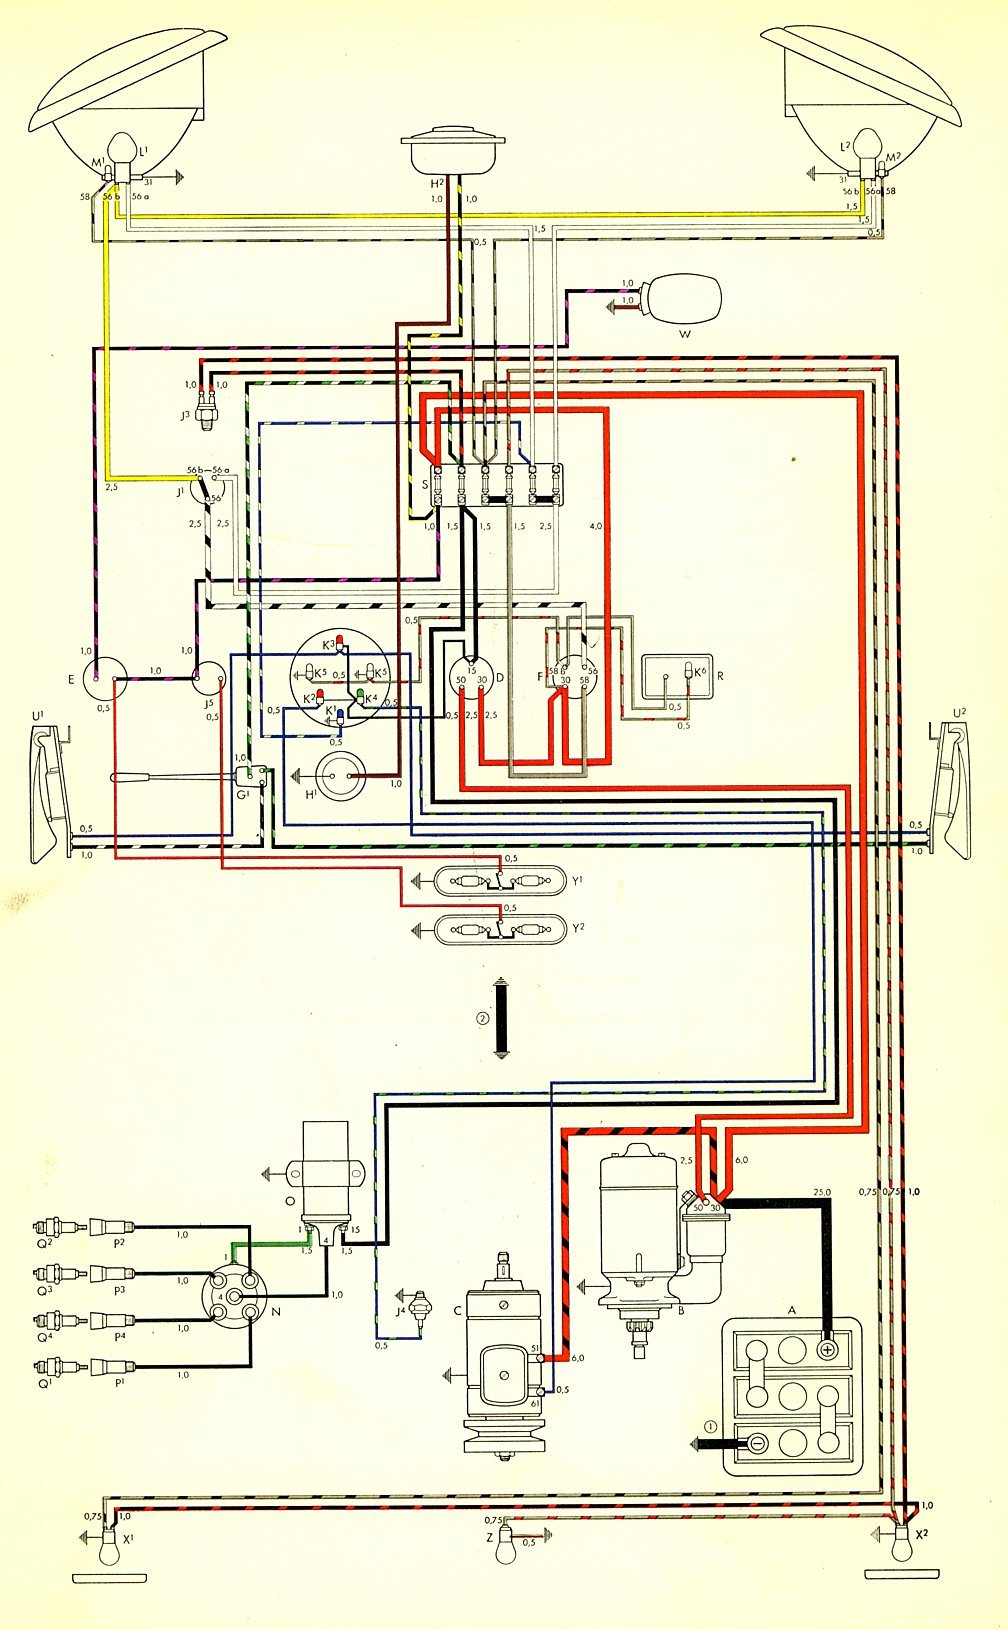 Wire Diagram 1979 Vw Van Wiring Diagrams For 1983 Chevy Thesamba Com Type 2 Volkwagen